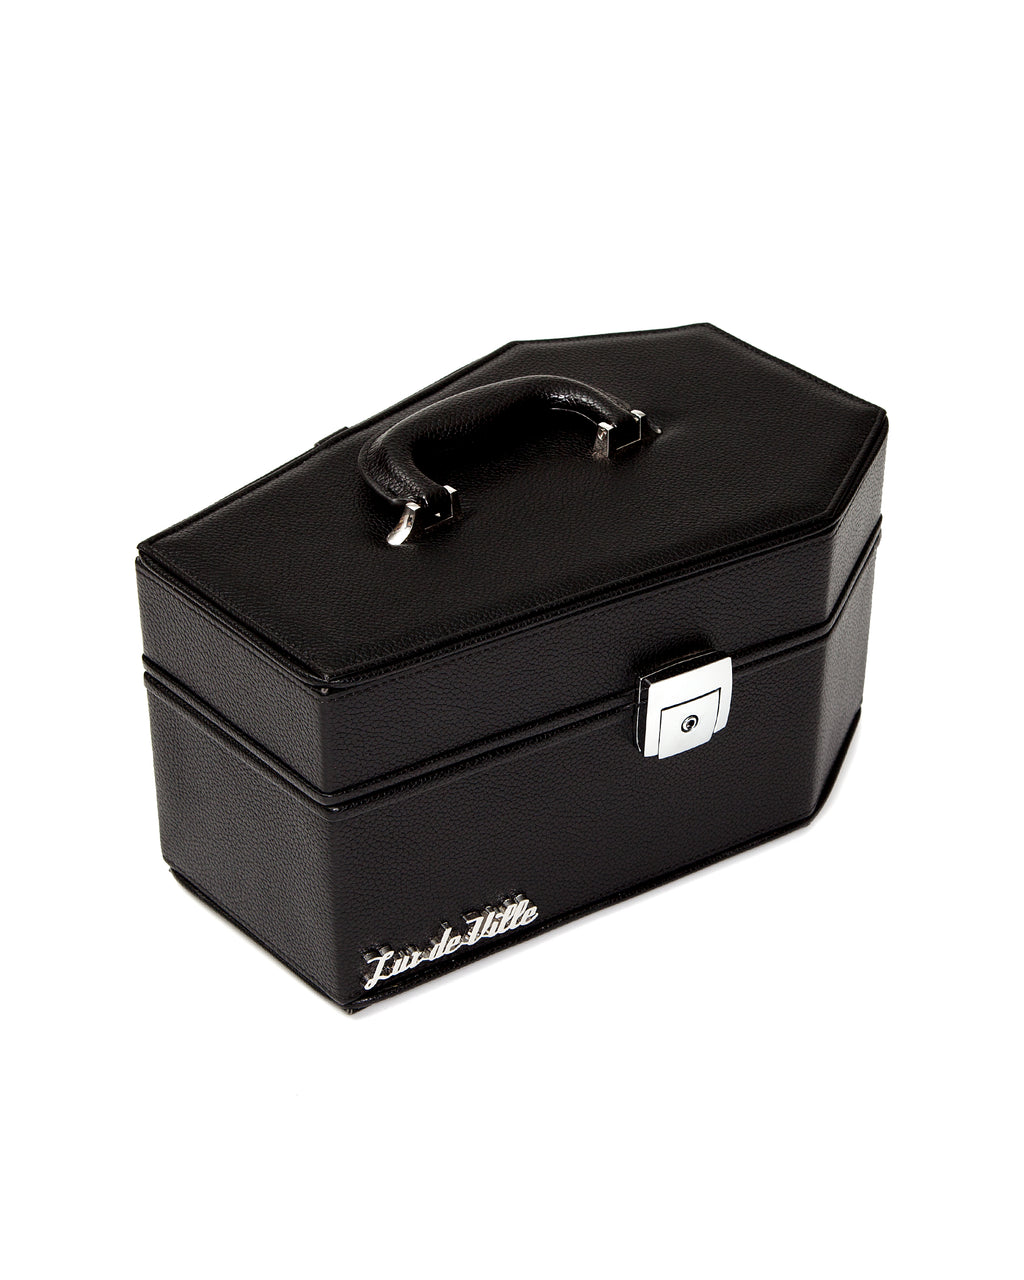 Rockwell Coffin Case Black Matte - Mini Atomic Totes